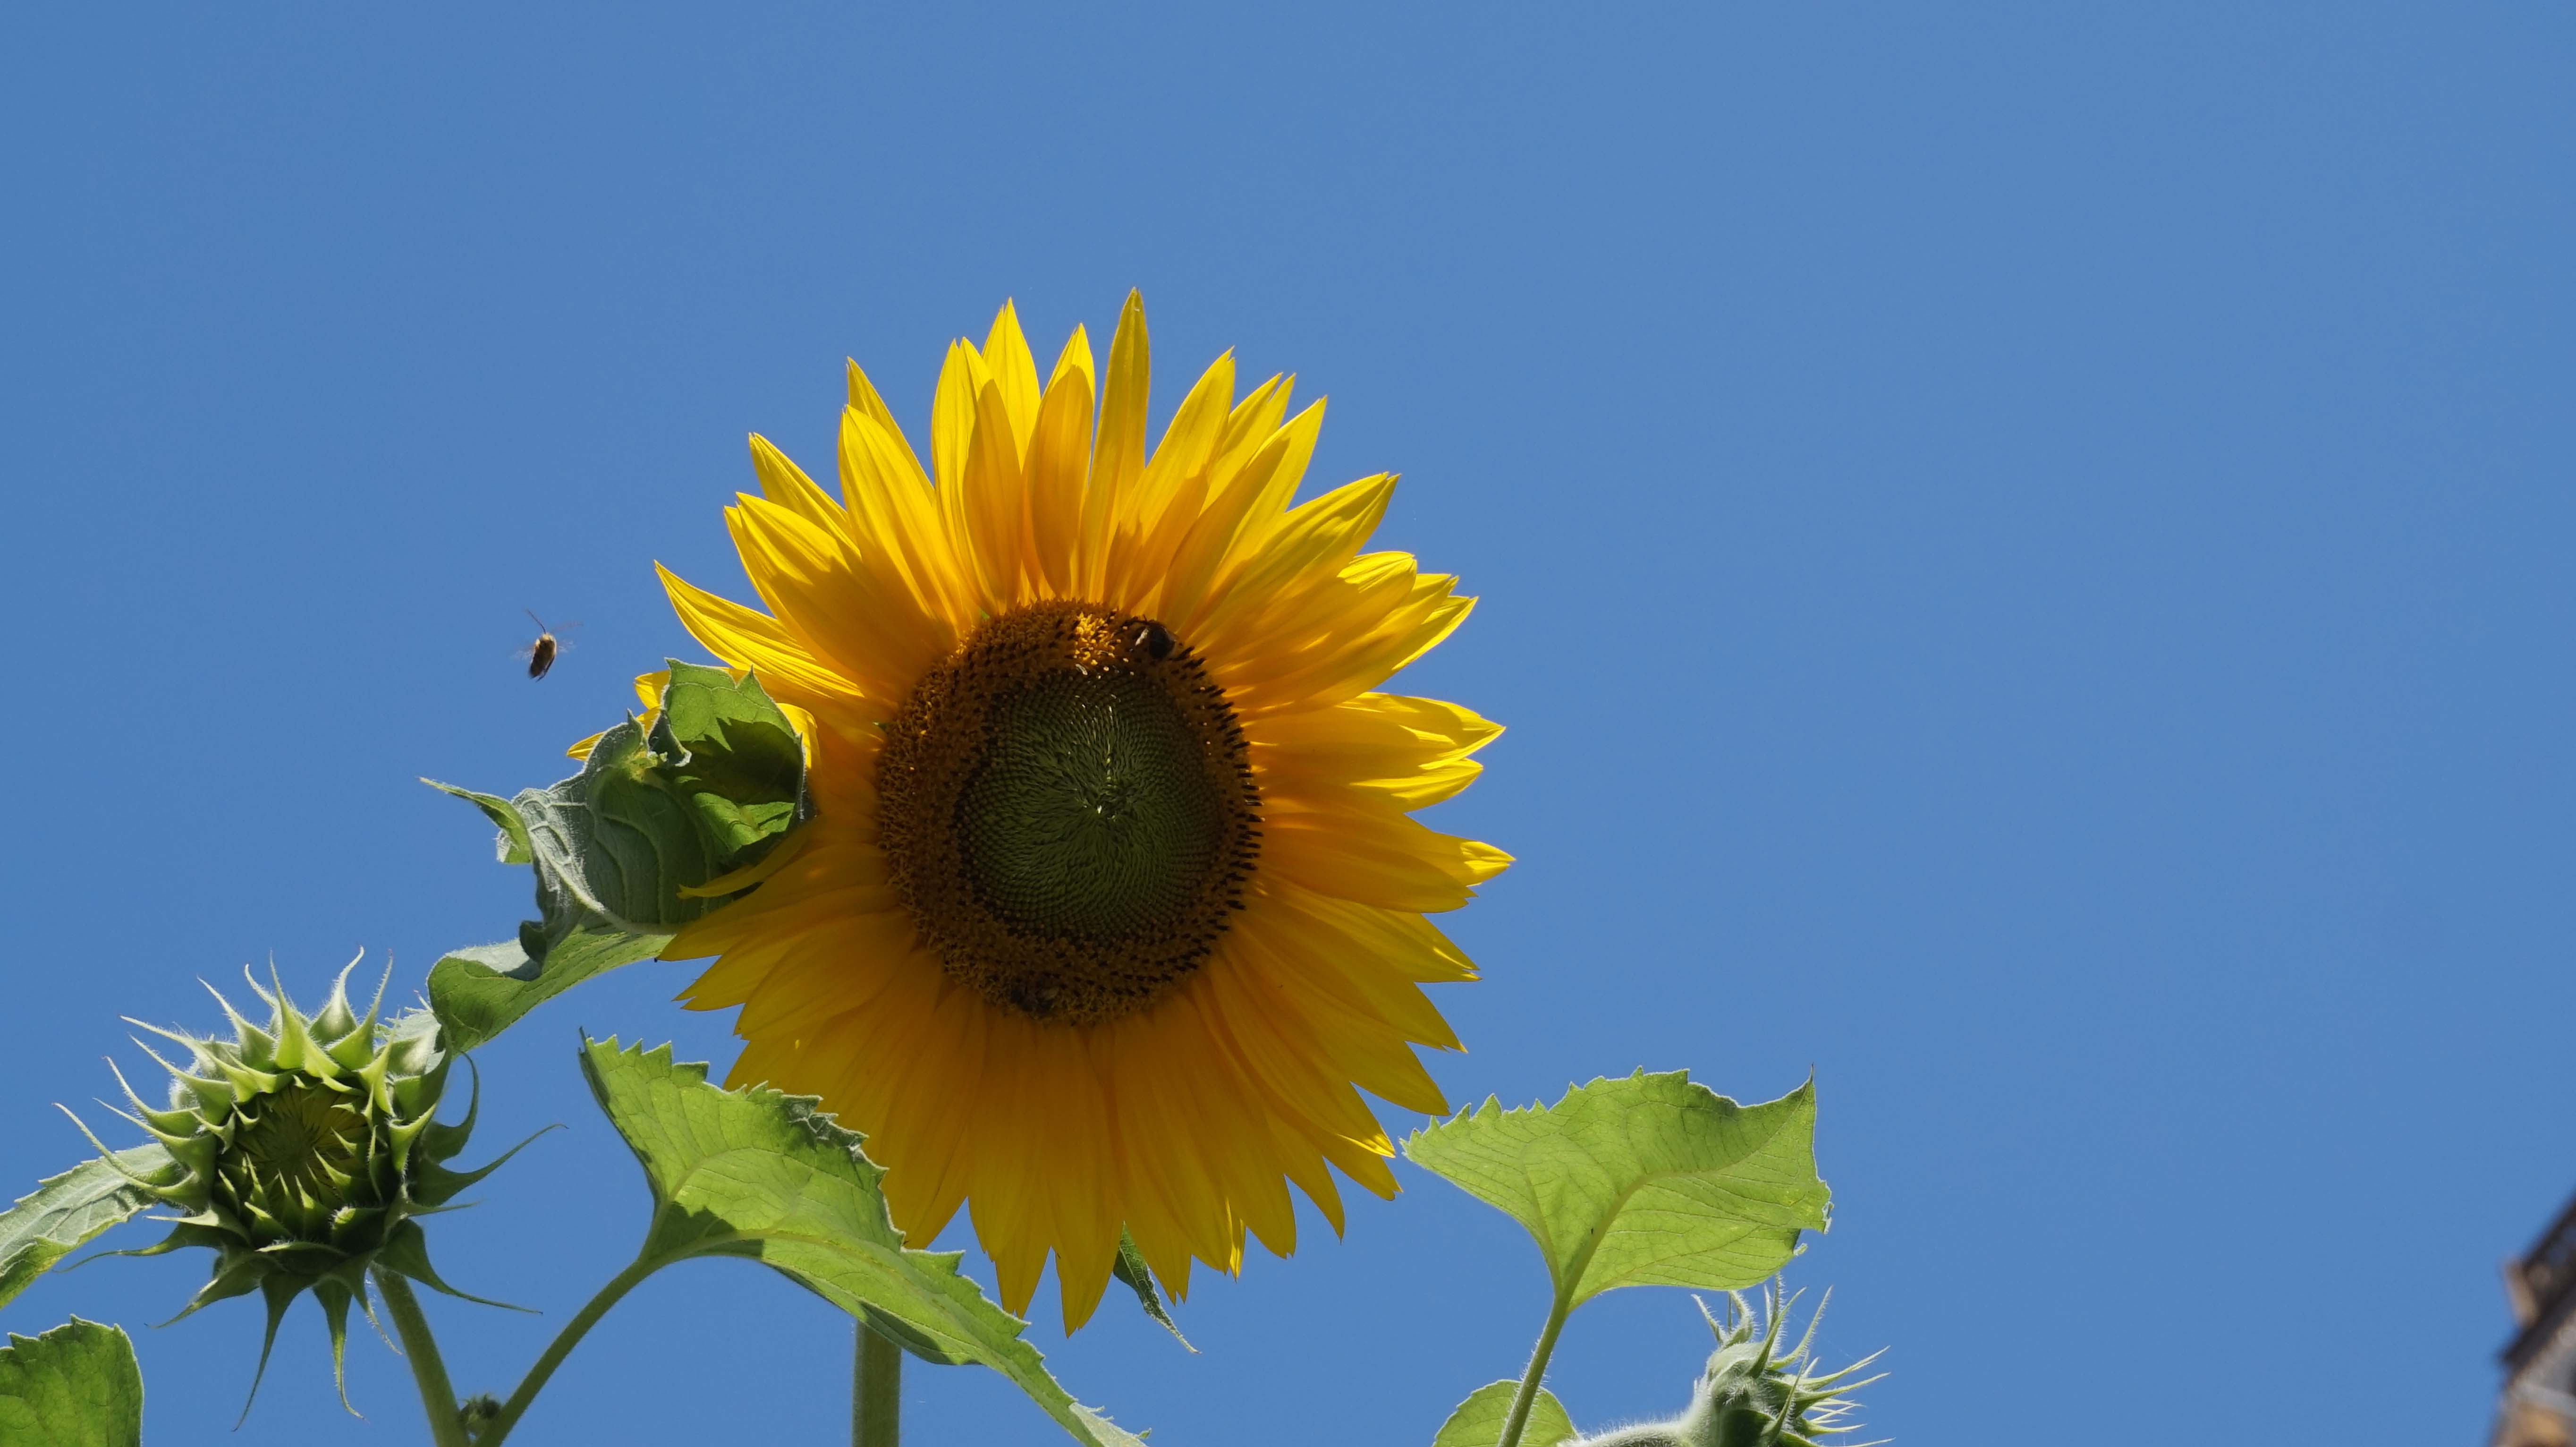 sunflower and bees 8-25-2014 low